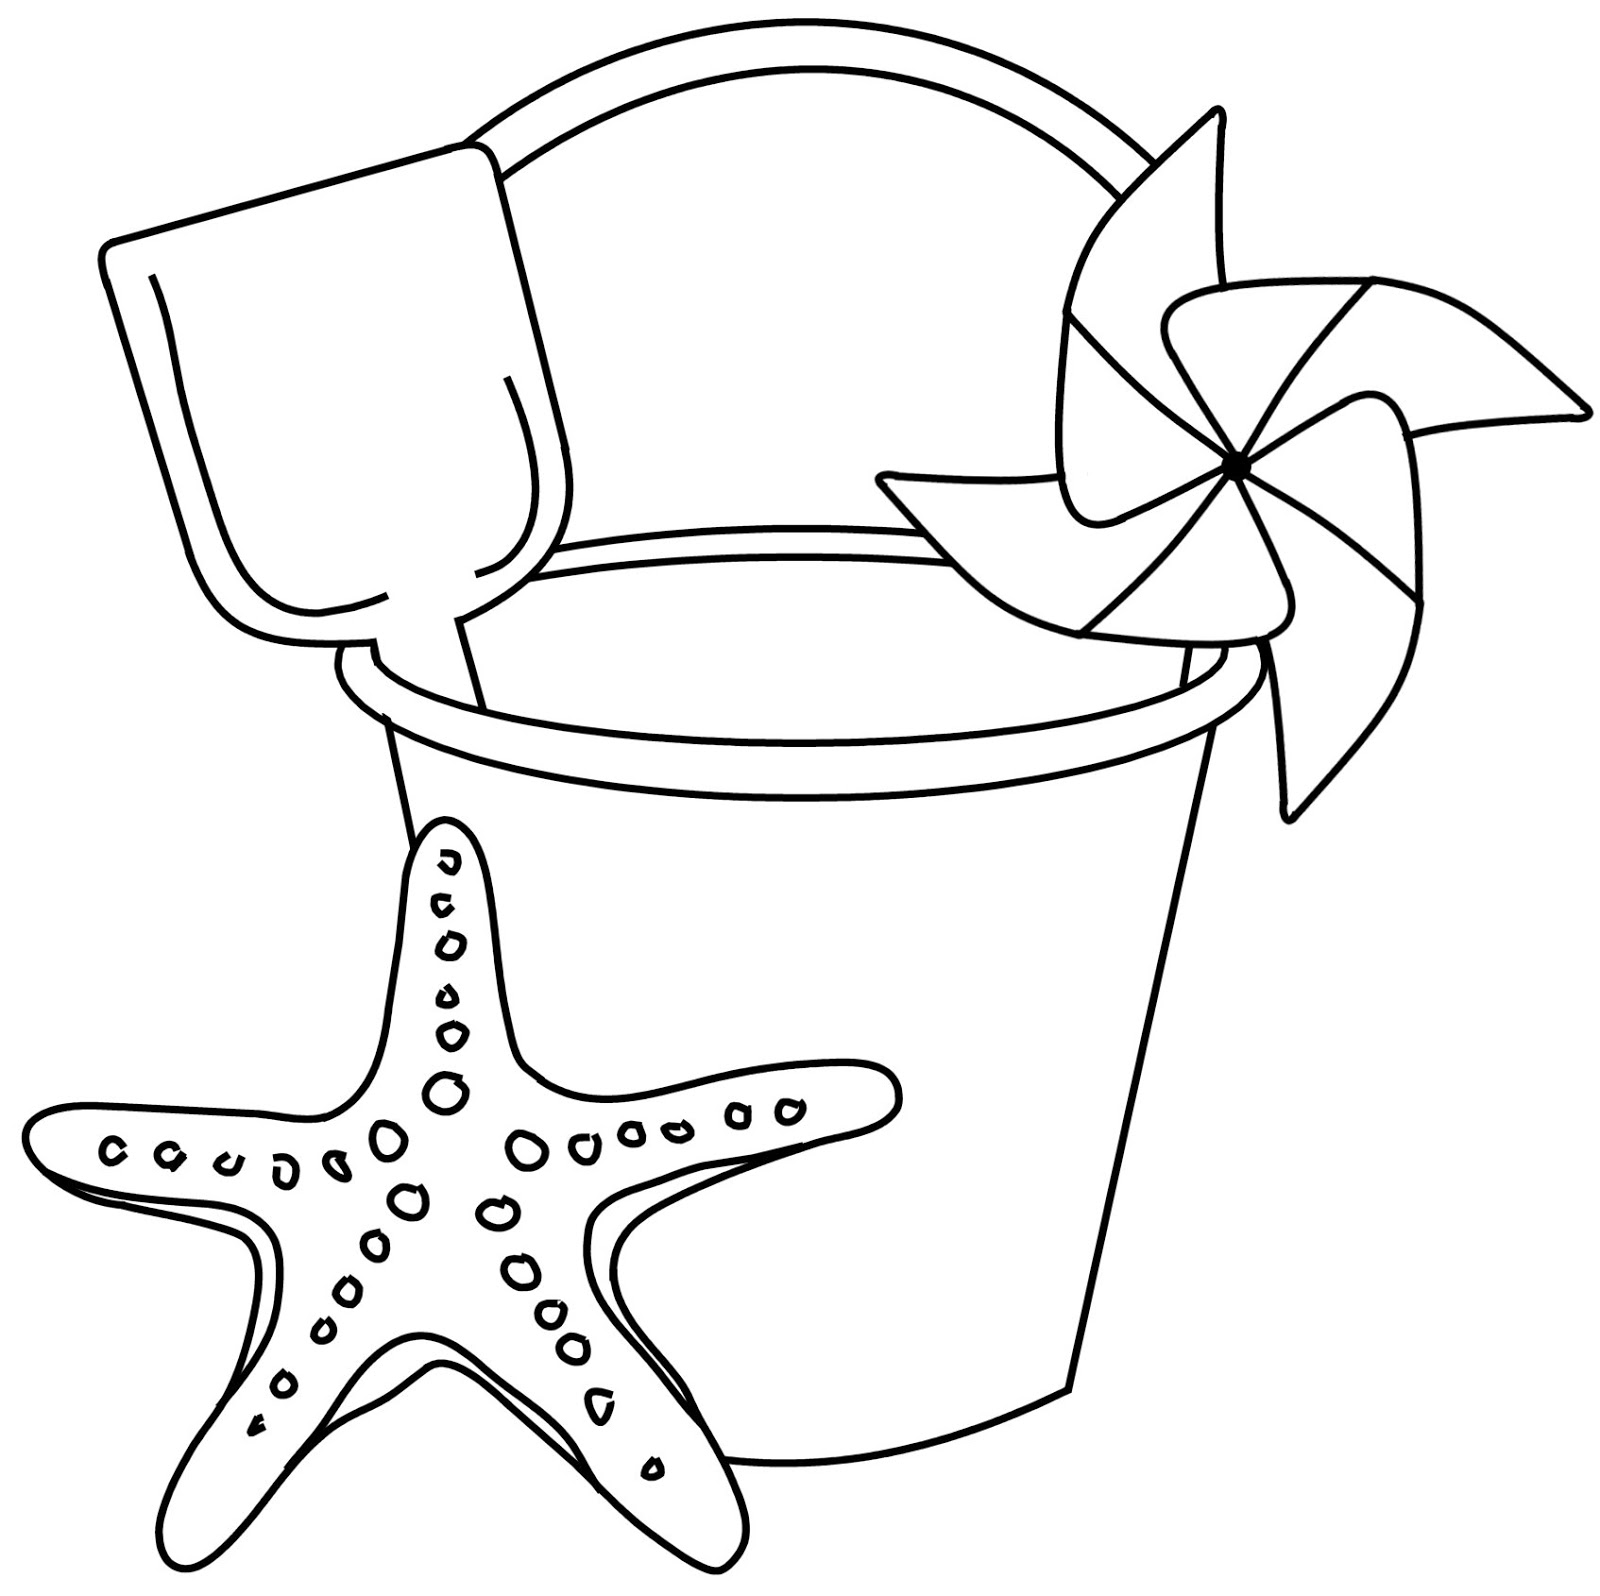 Scribbles Drawing And Coloring Book : Scribbles designs f sand bucket free